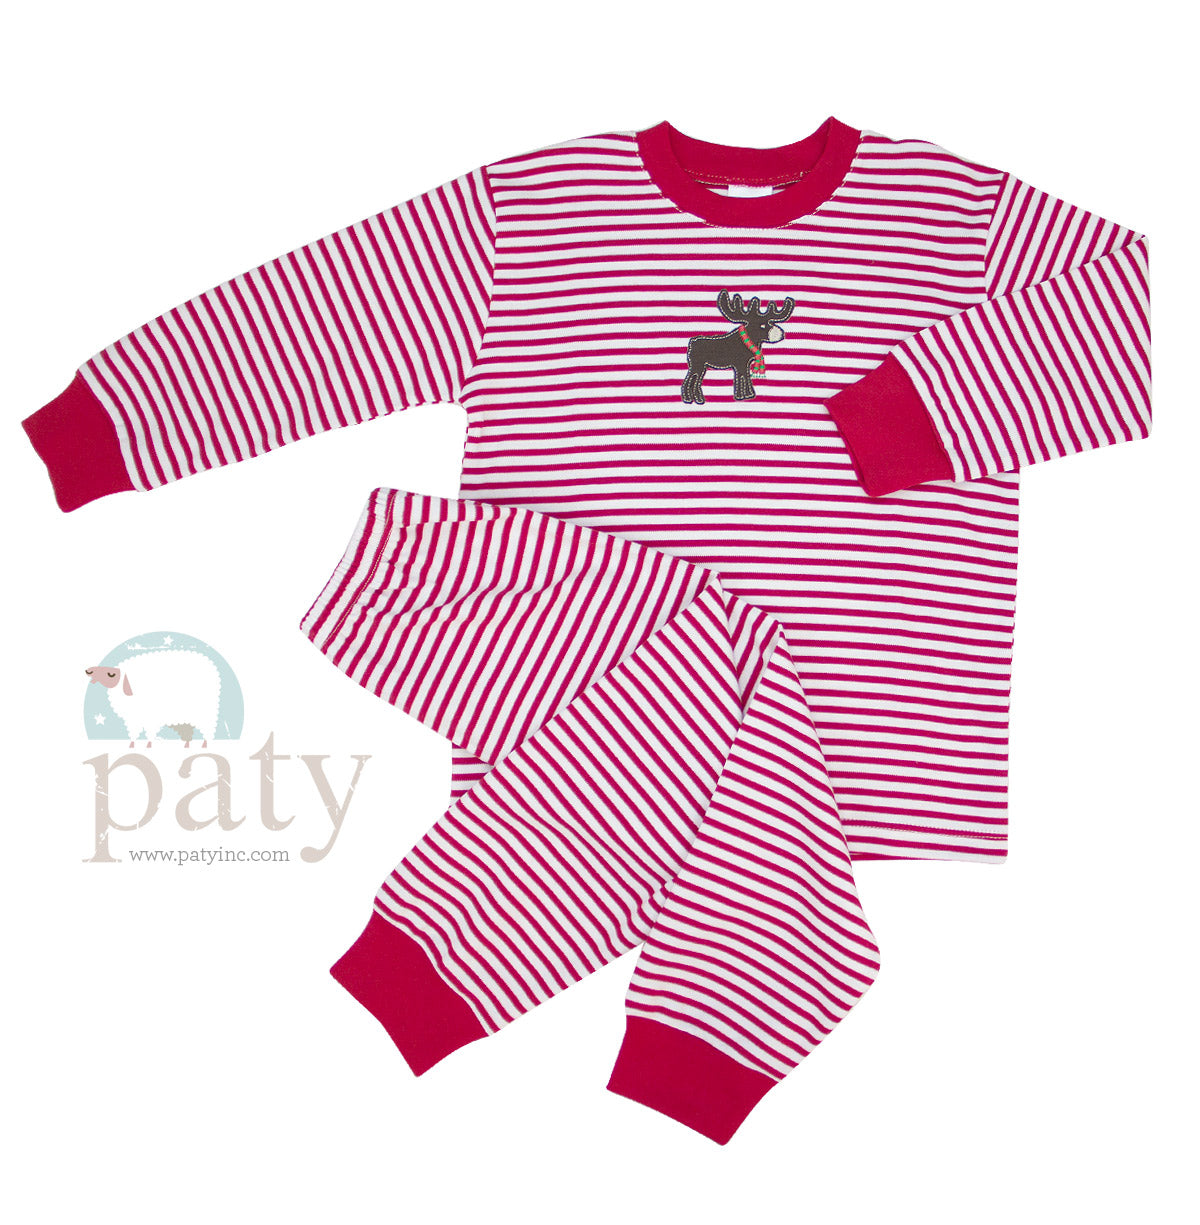 ca0b61c6a49ab Clothing - Miss Lillie Children's Boutique